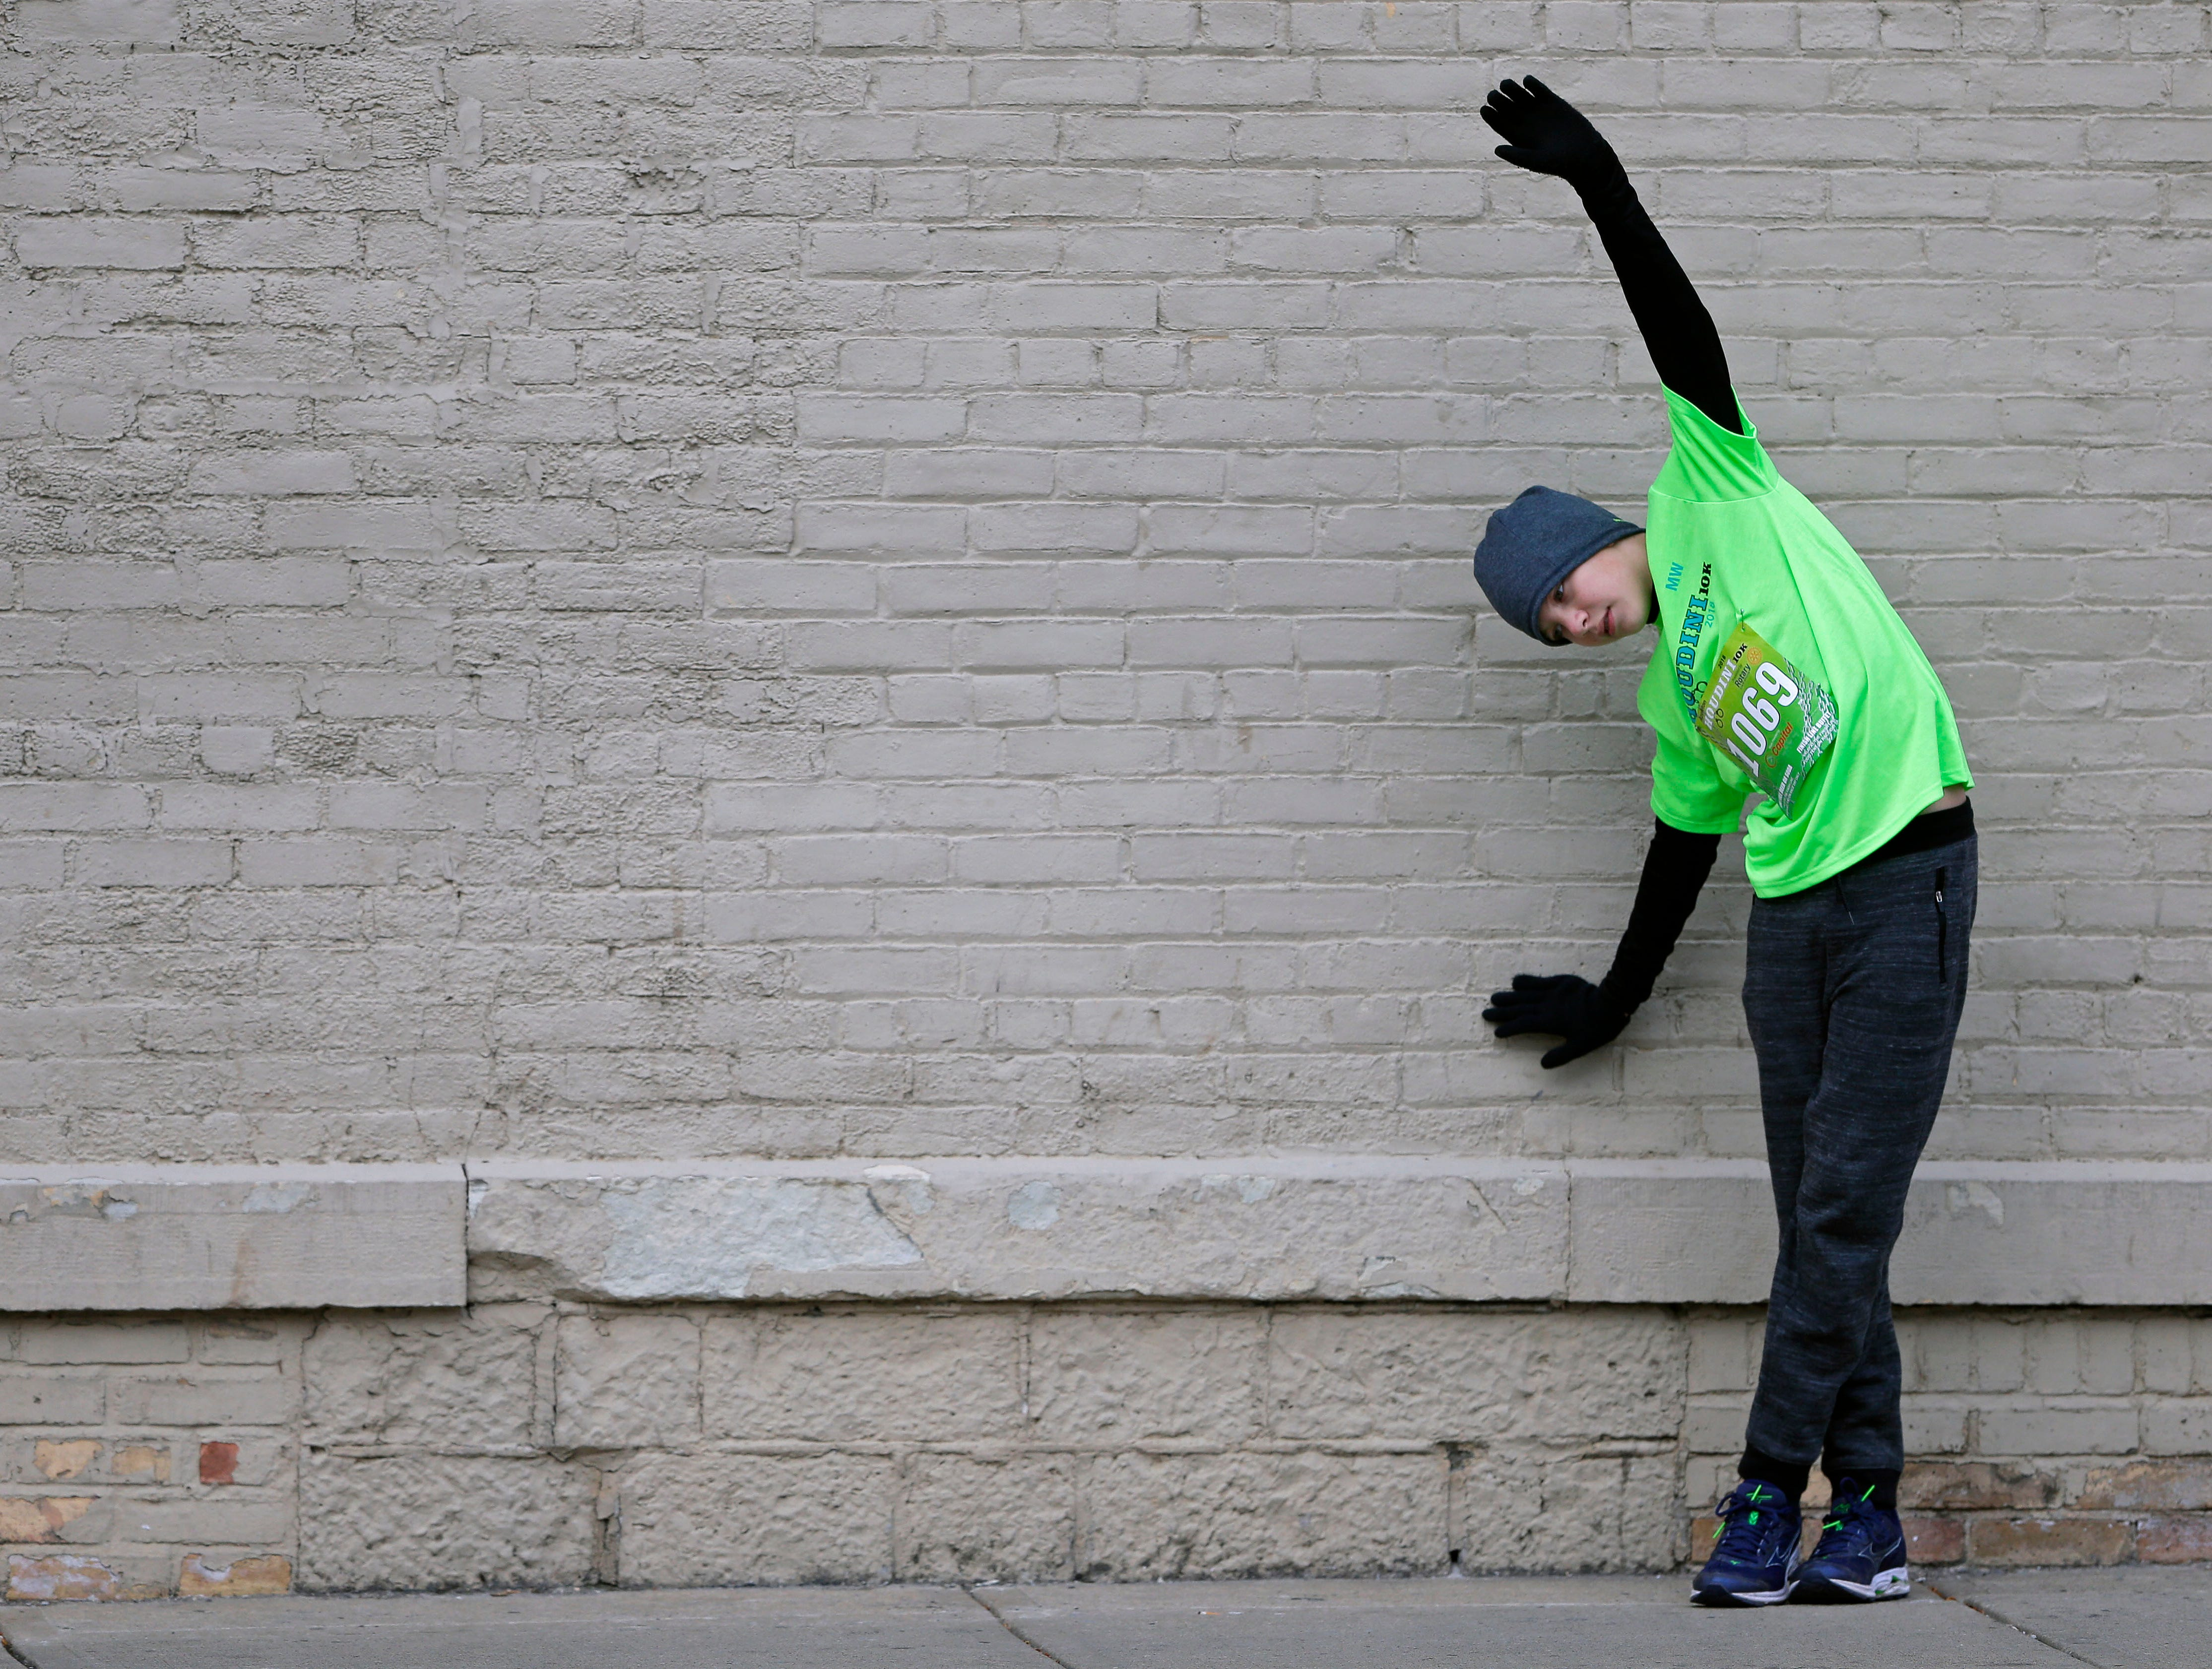 Simon Gavin stretches before the start of the 4th annual Appleton Houdini 10K Saturday, November 3, 2018, in Appleton, Wis.